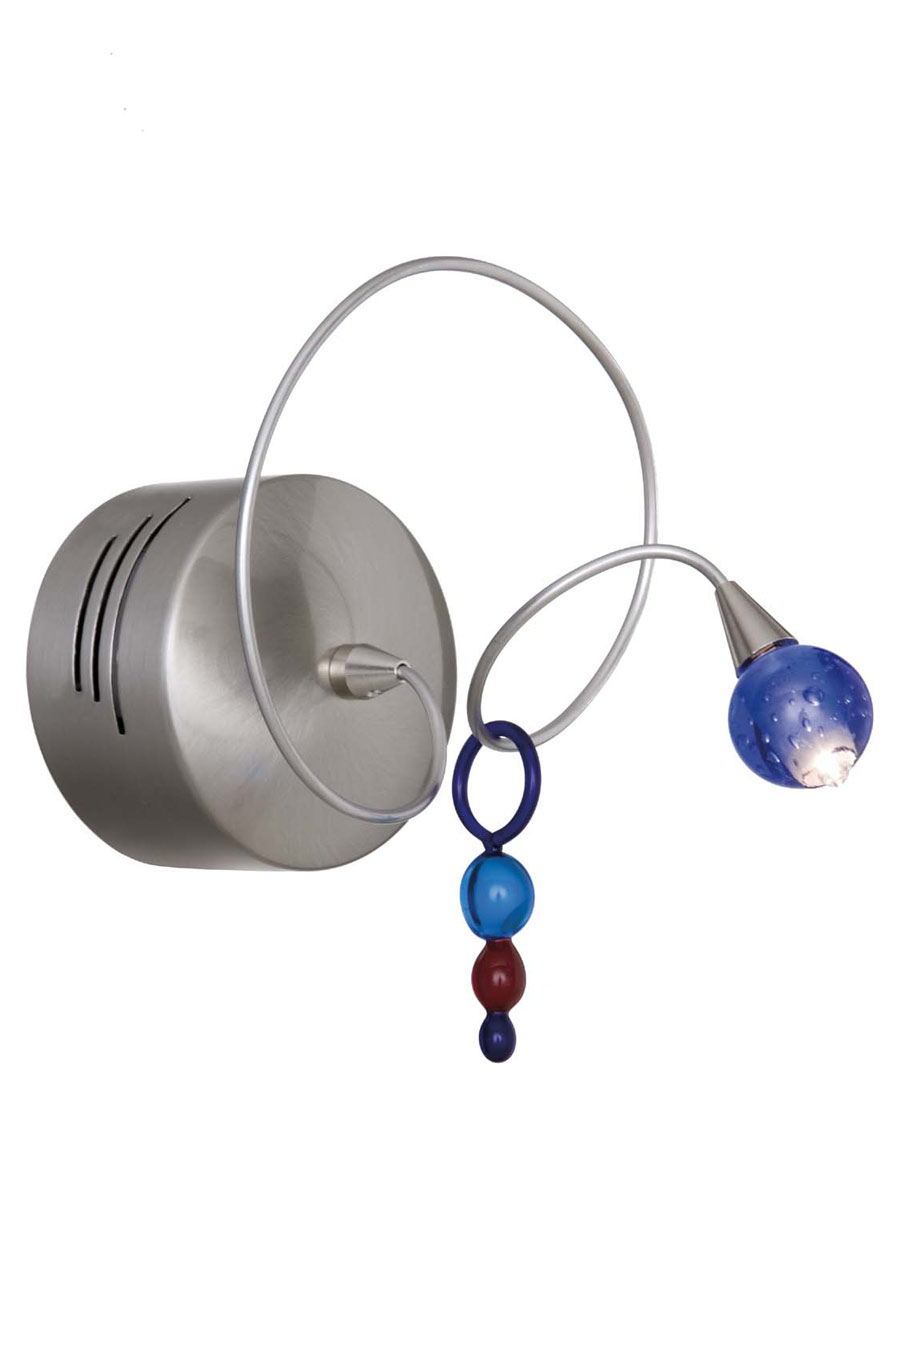 Strawberry single wall light in metal wire with coloured drop. Harco Loor.